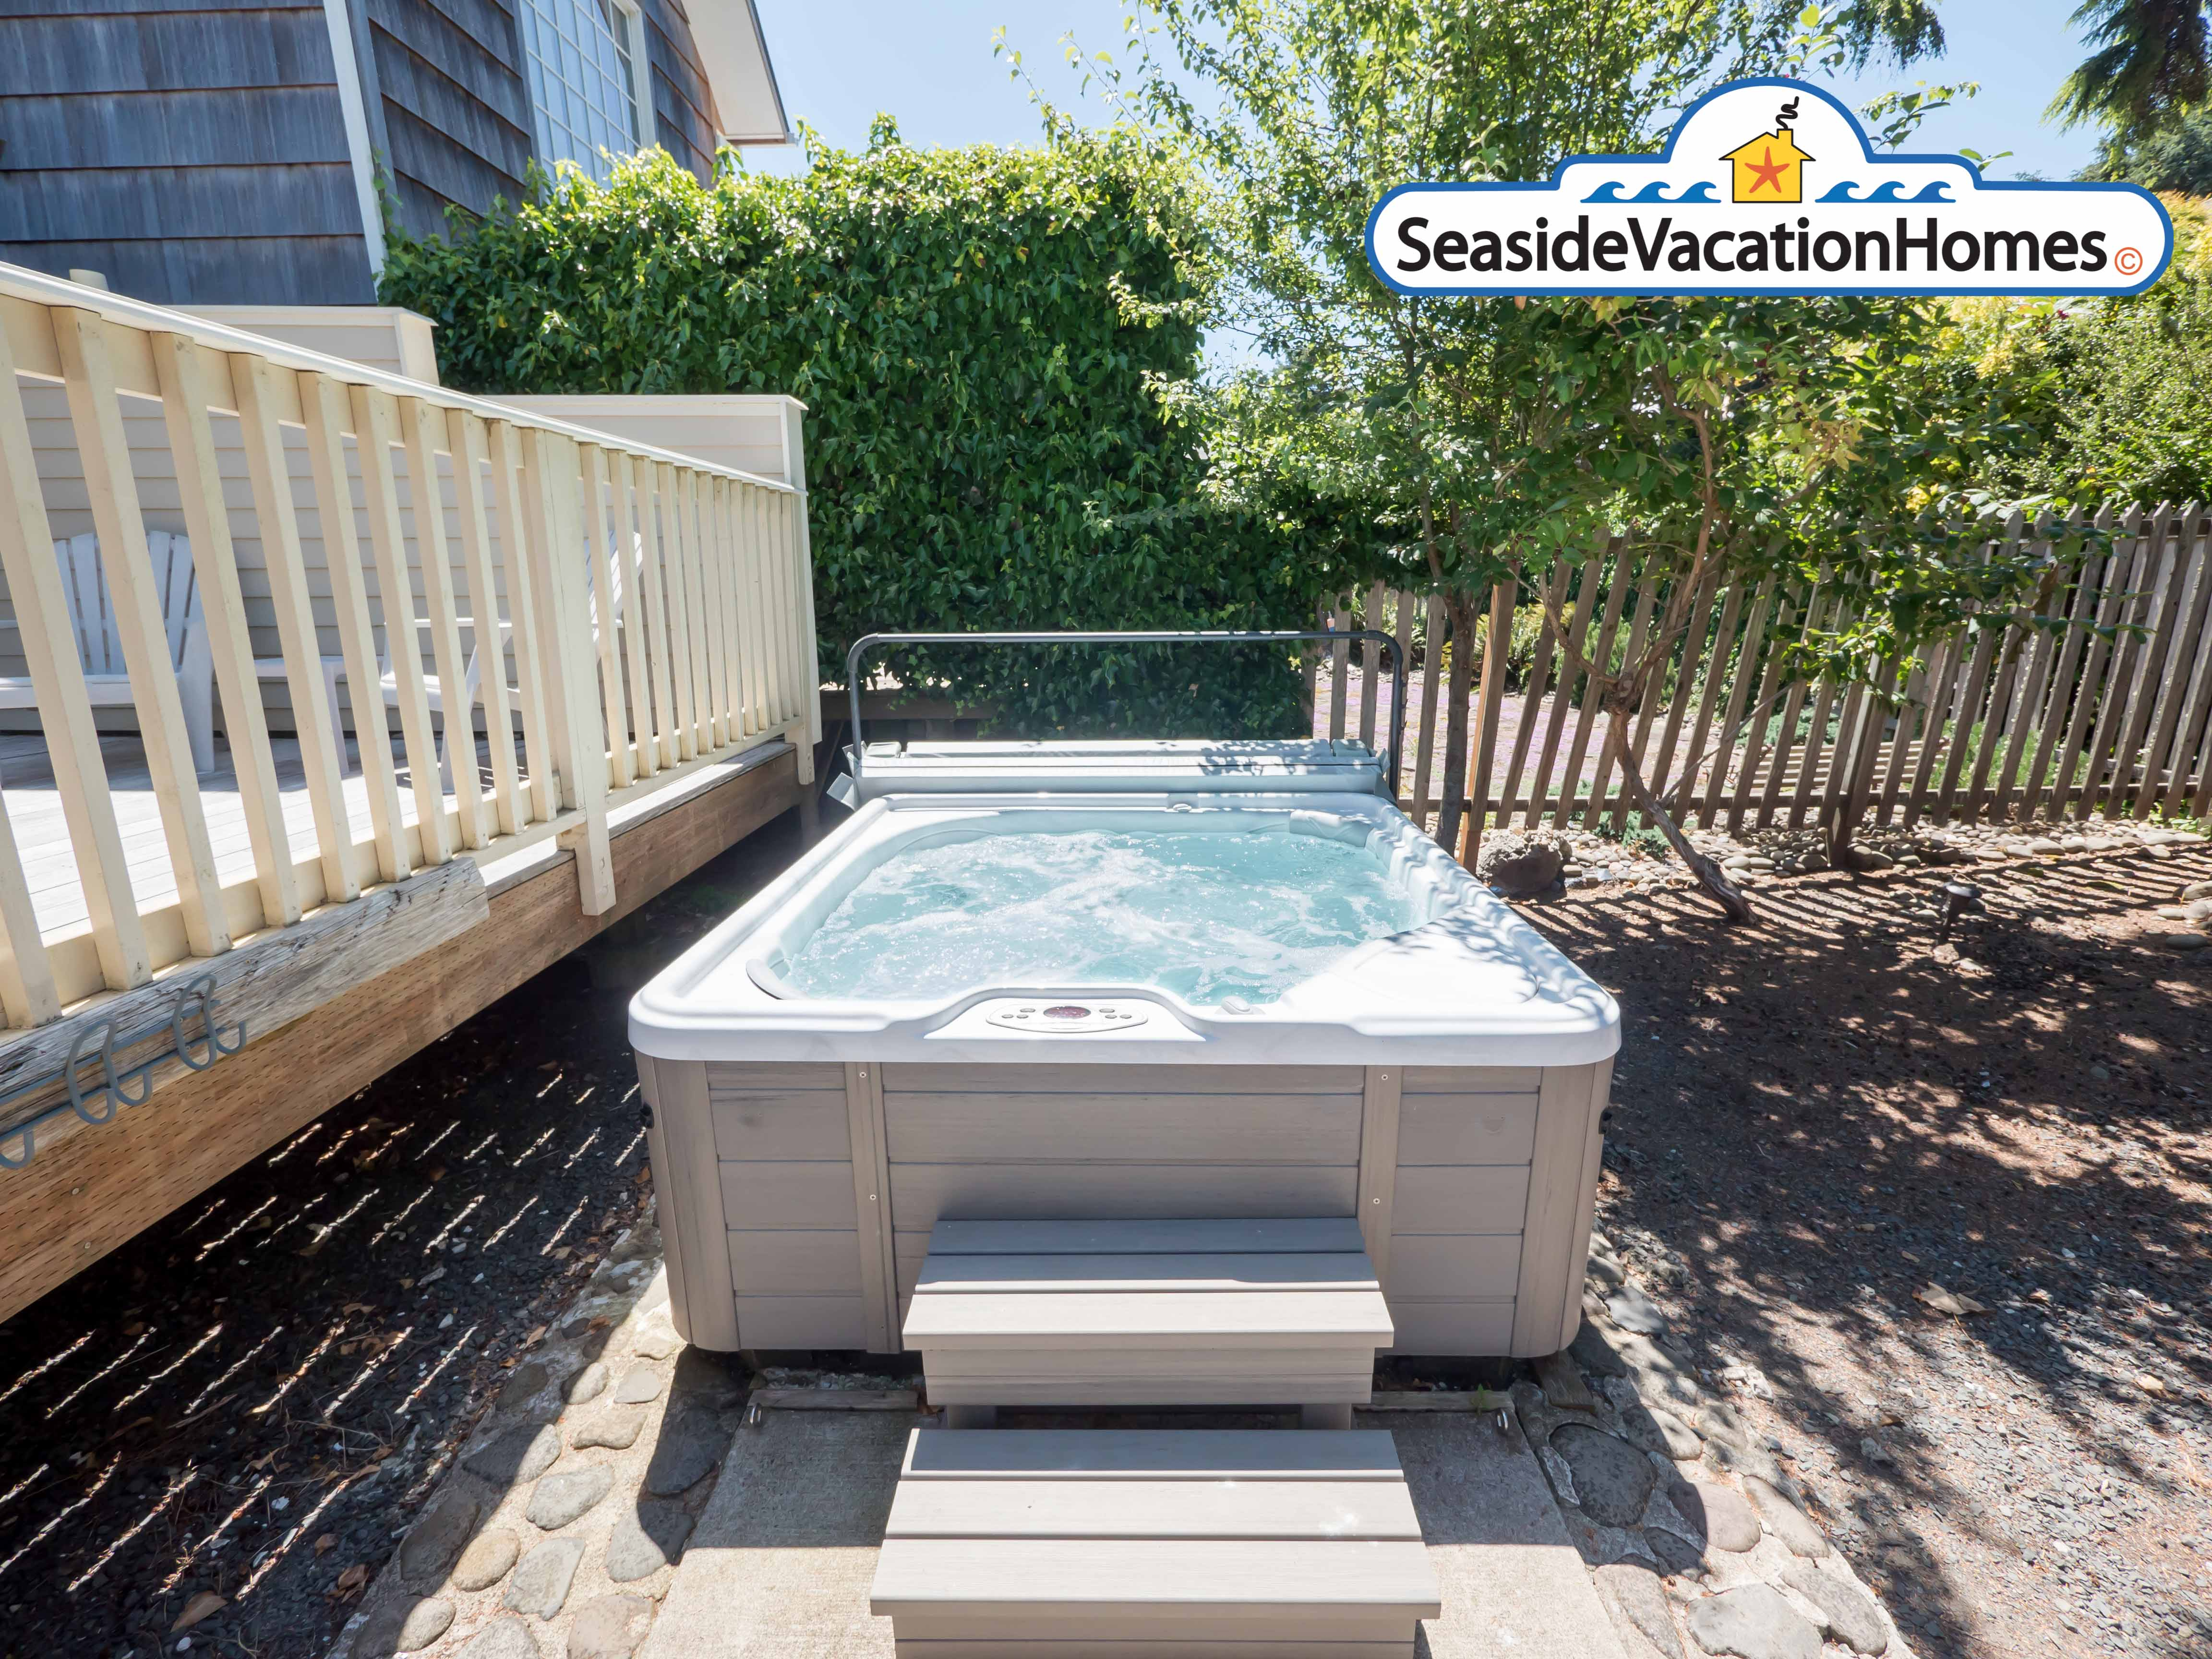 2 bedroom vacation rental with Hot Tub in Seaside, OR